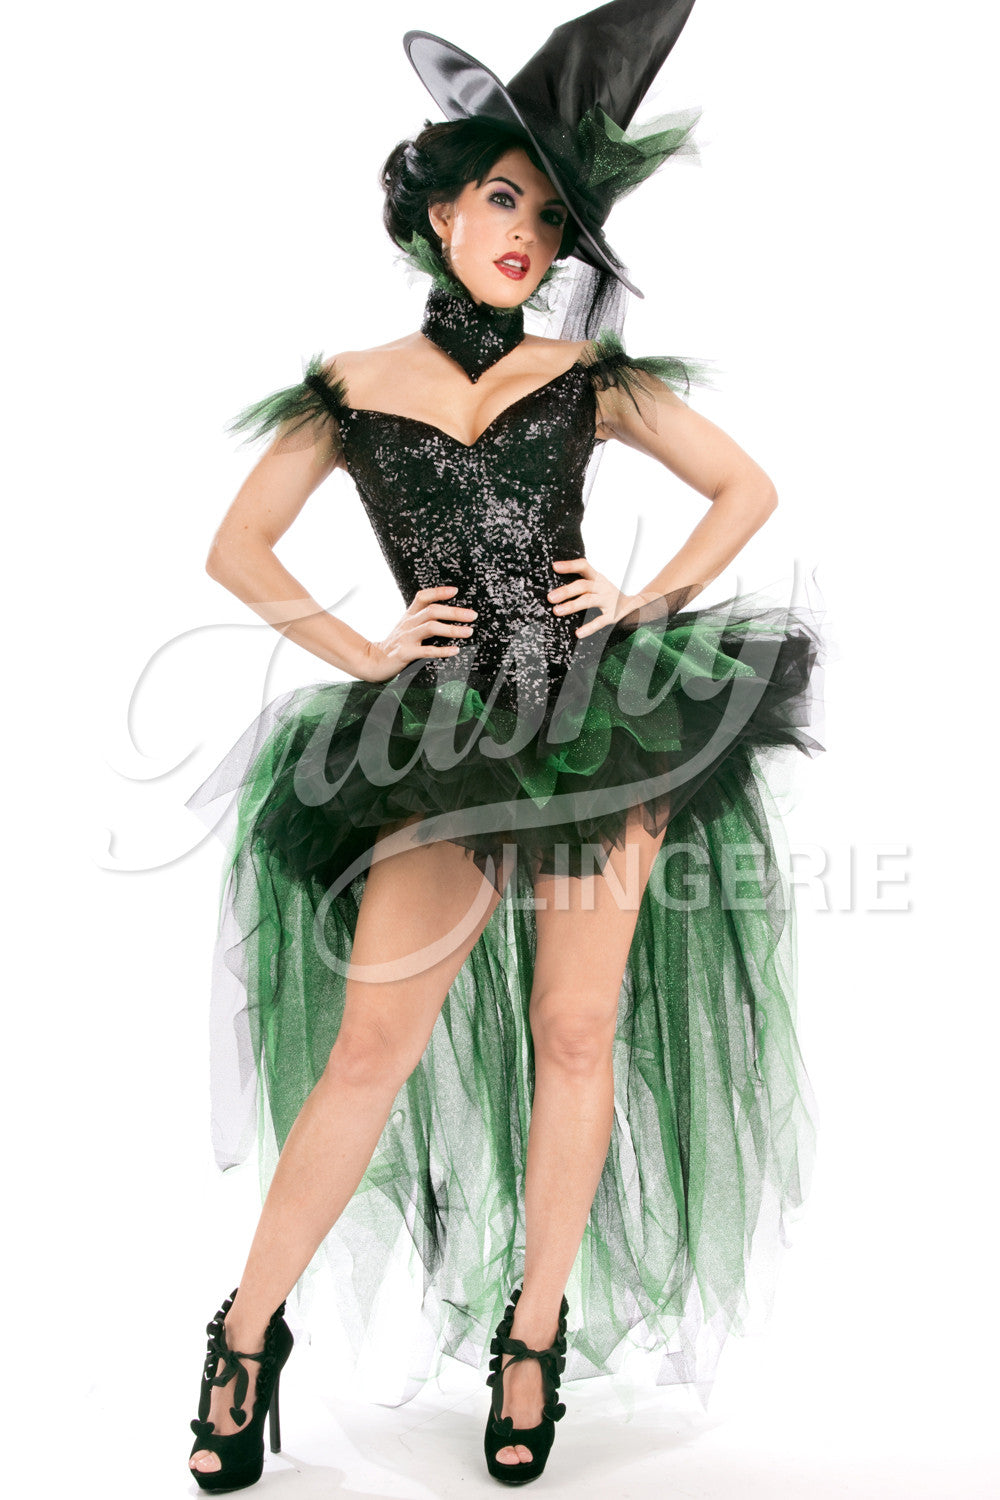 evanora witch corset – trashy